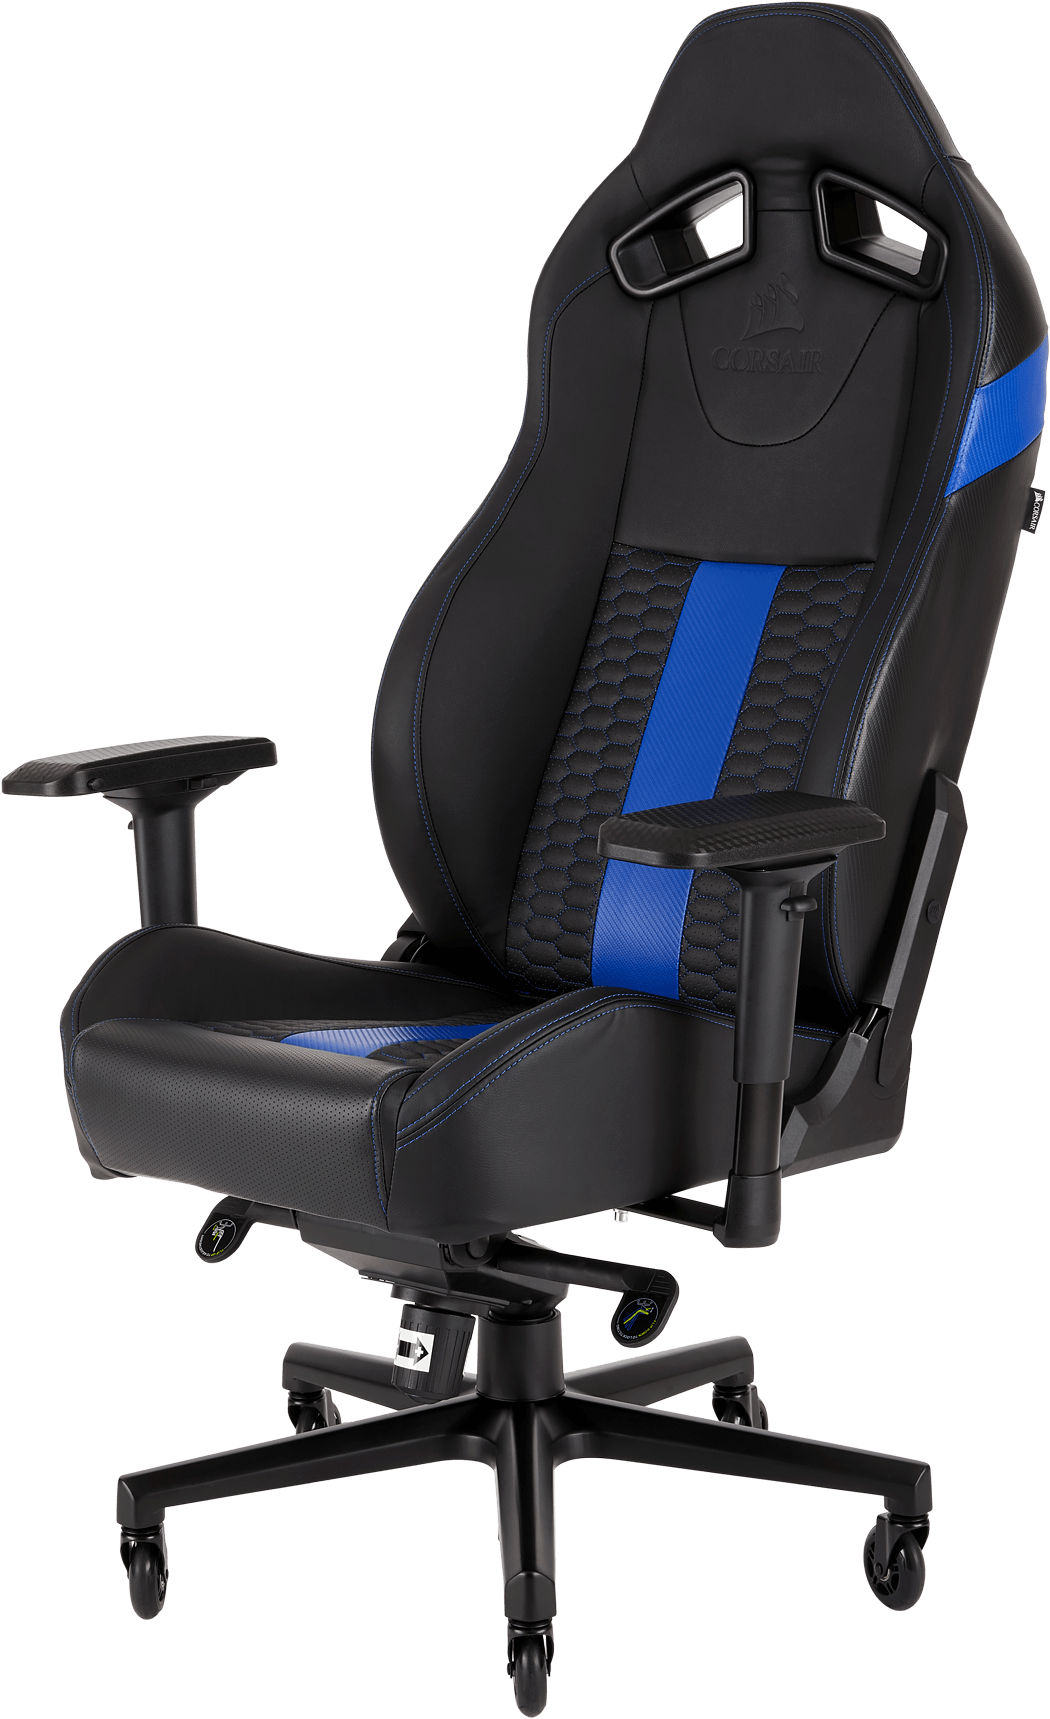 T2 ROAD WARRIOR Gaming Chair — Black/Blue